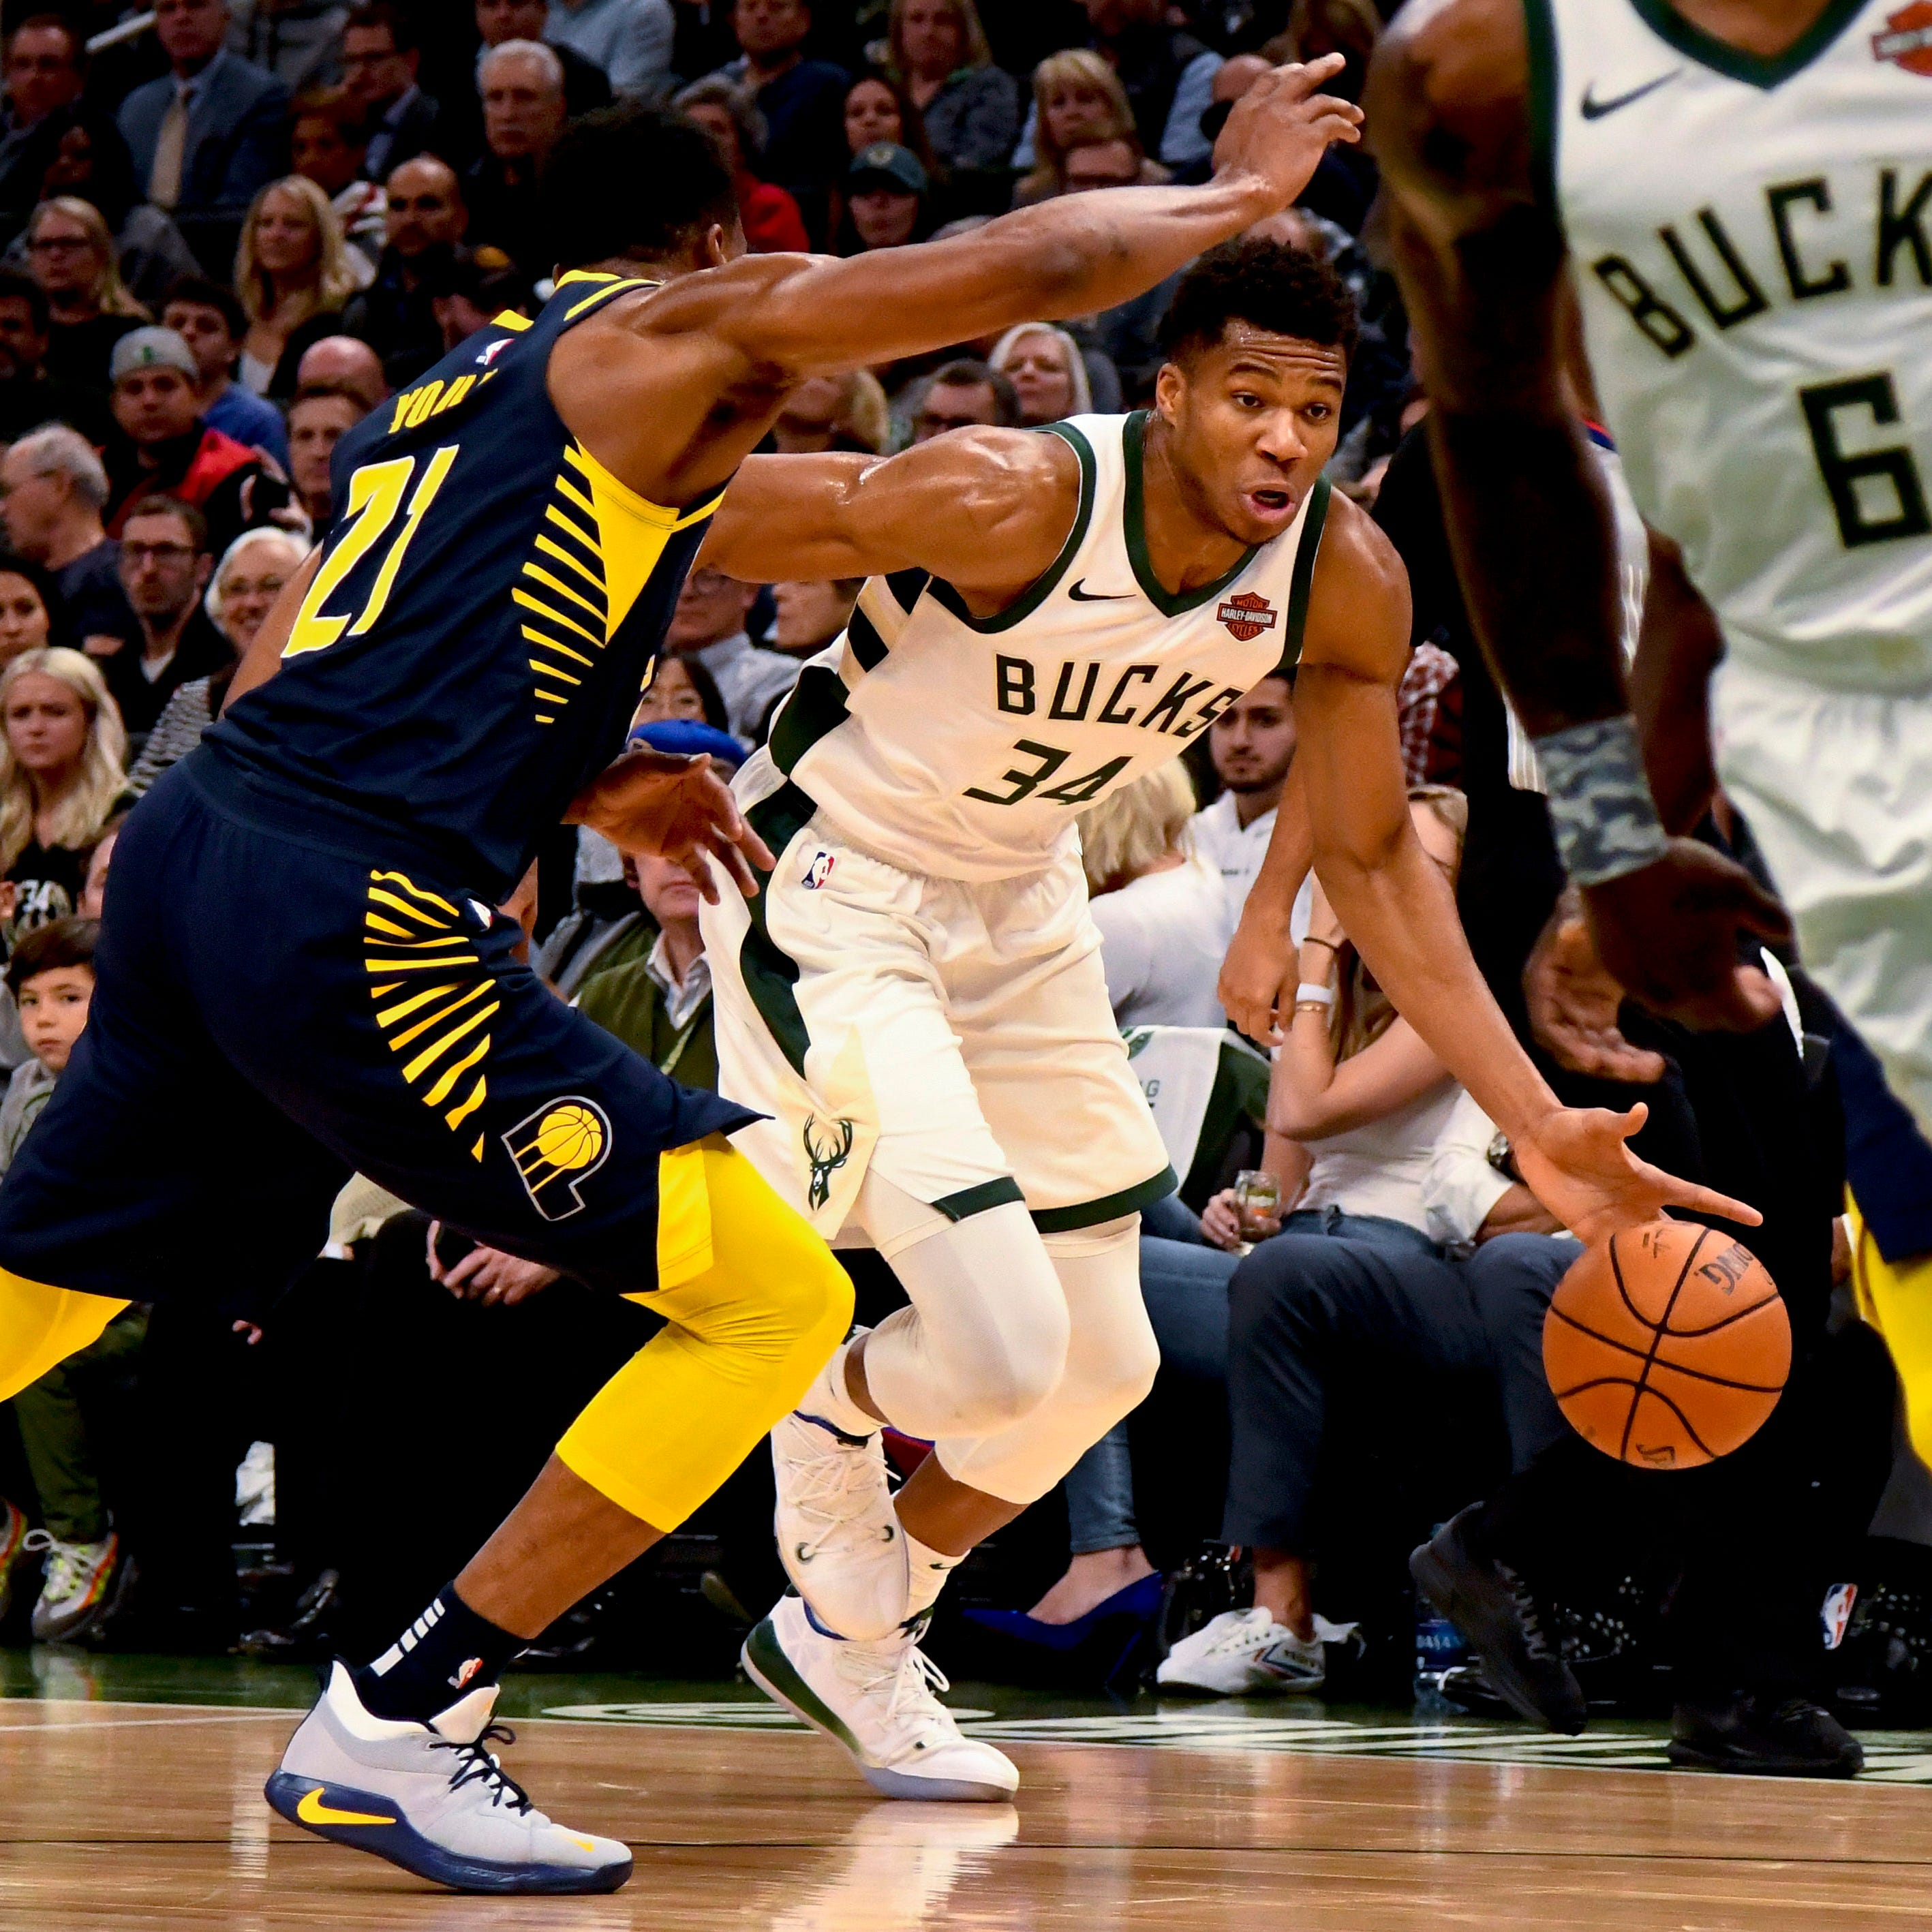 Pacers wilt under Bucks' 3-point barrage and unstoppable Giannis Antetokounmpo